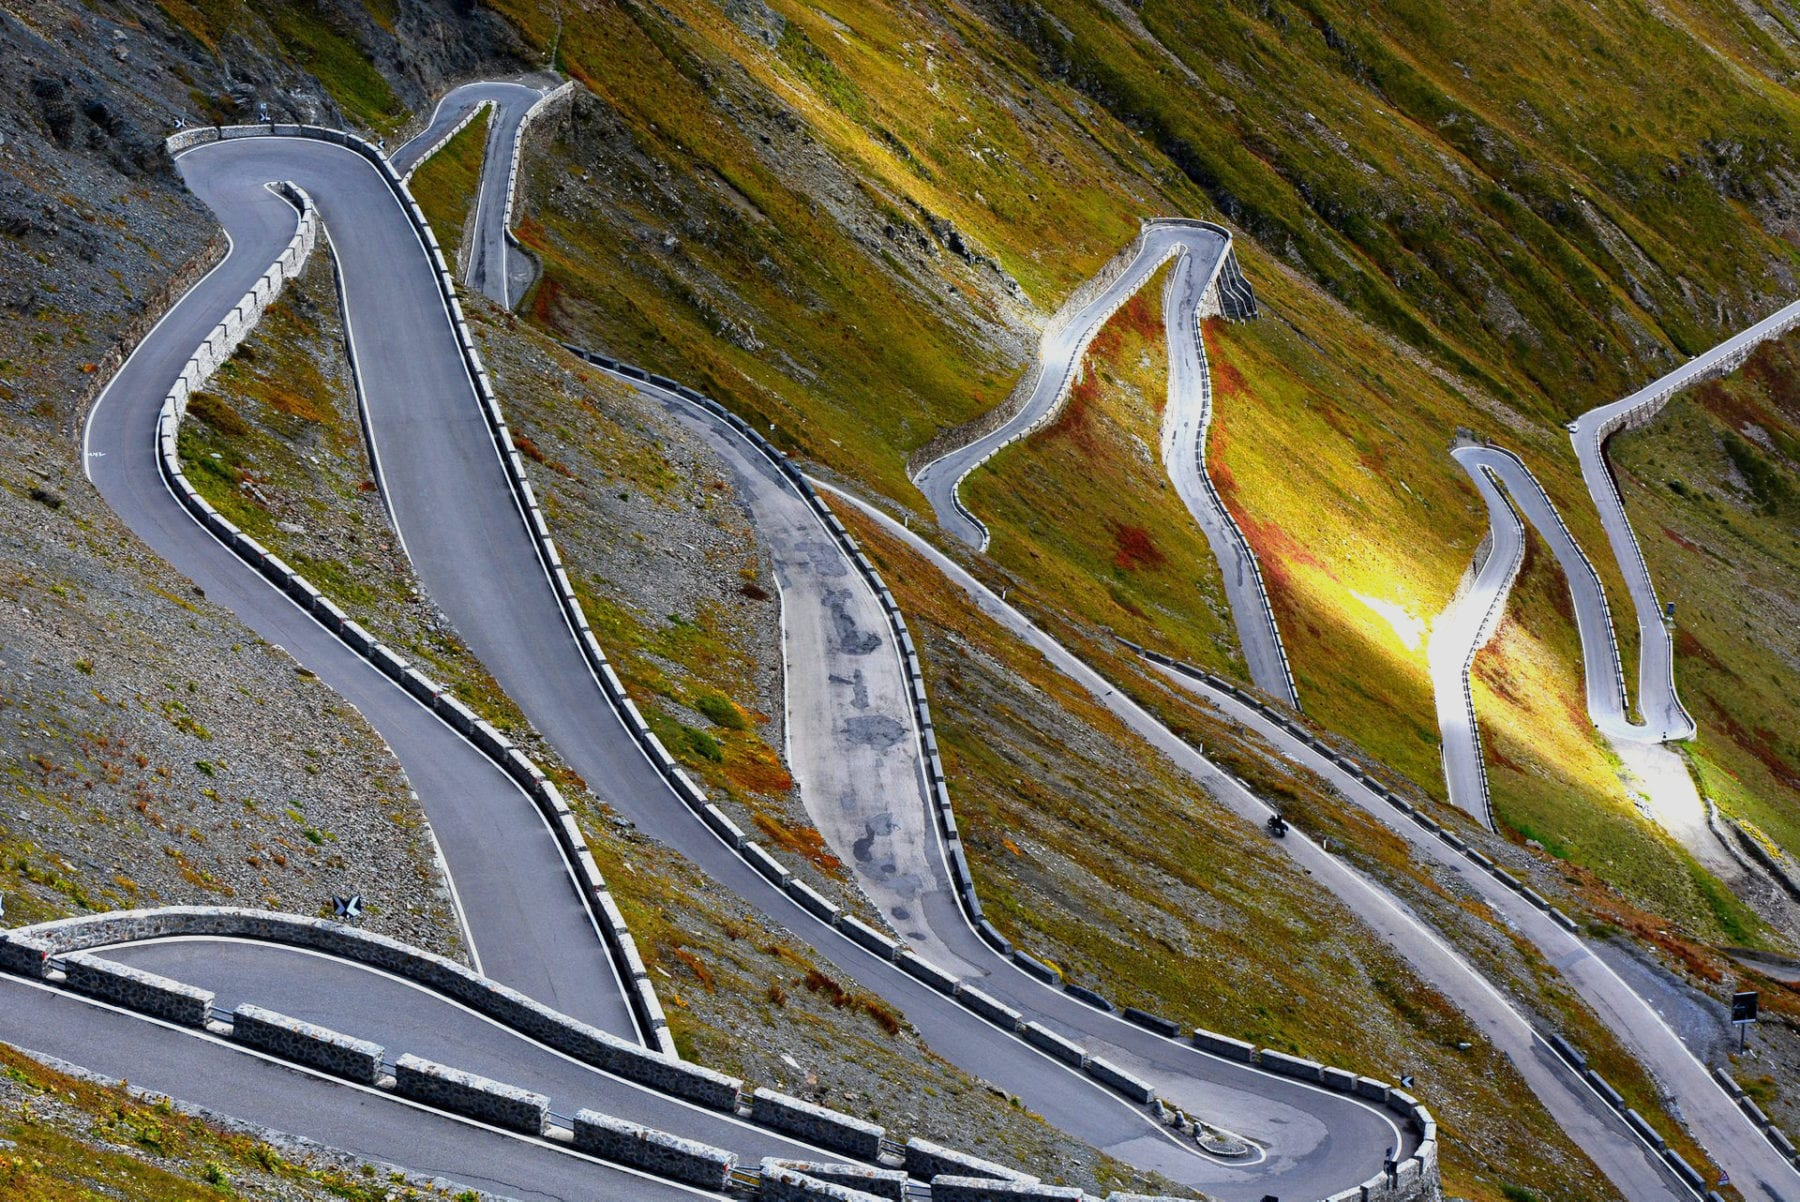 italy-stelvio-pass Hella Pagid Brake Pads tested